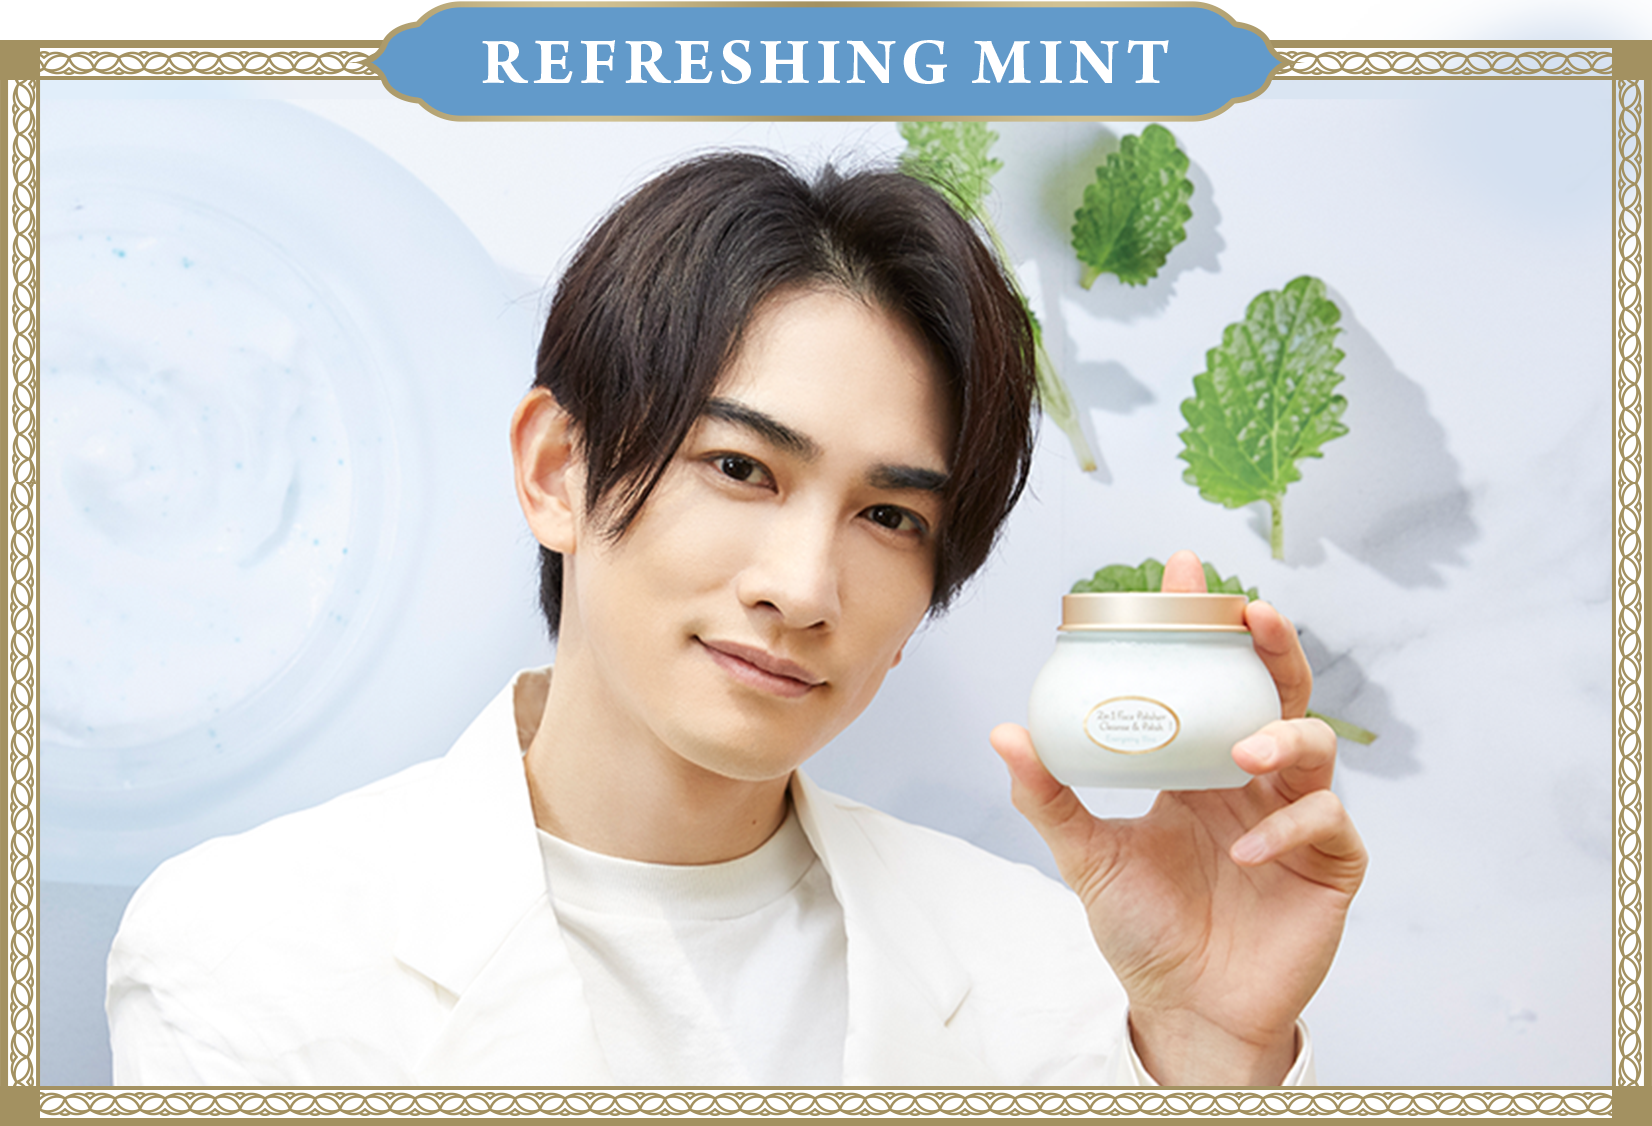 REFRESHING MINT